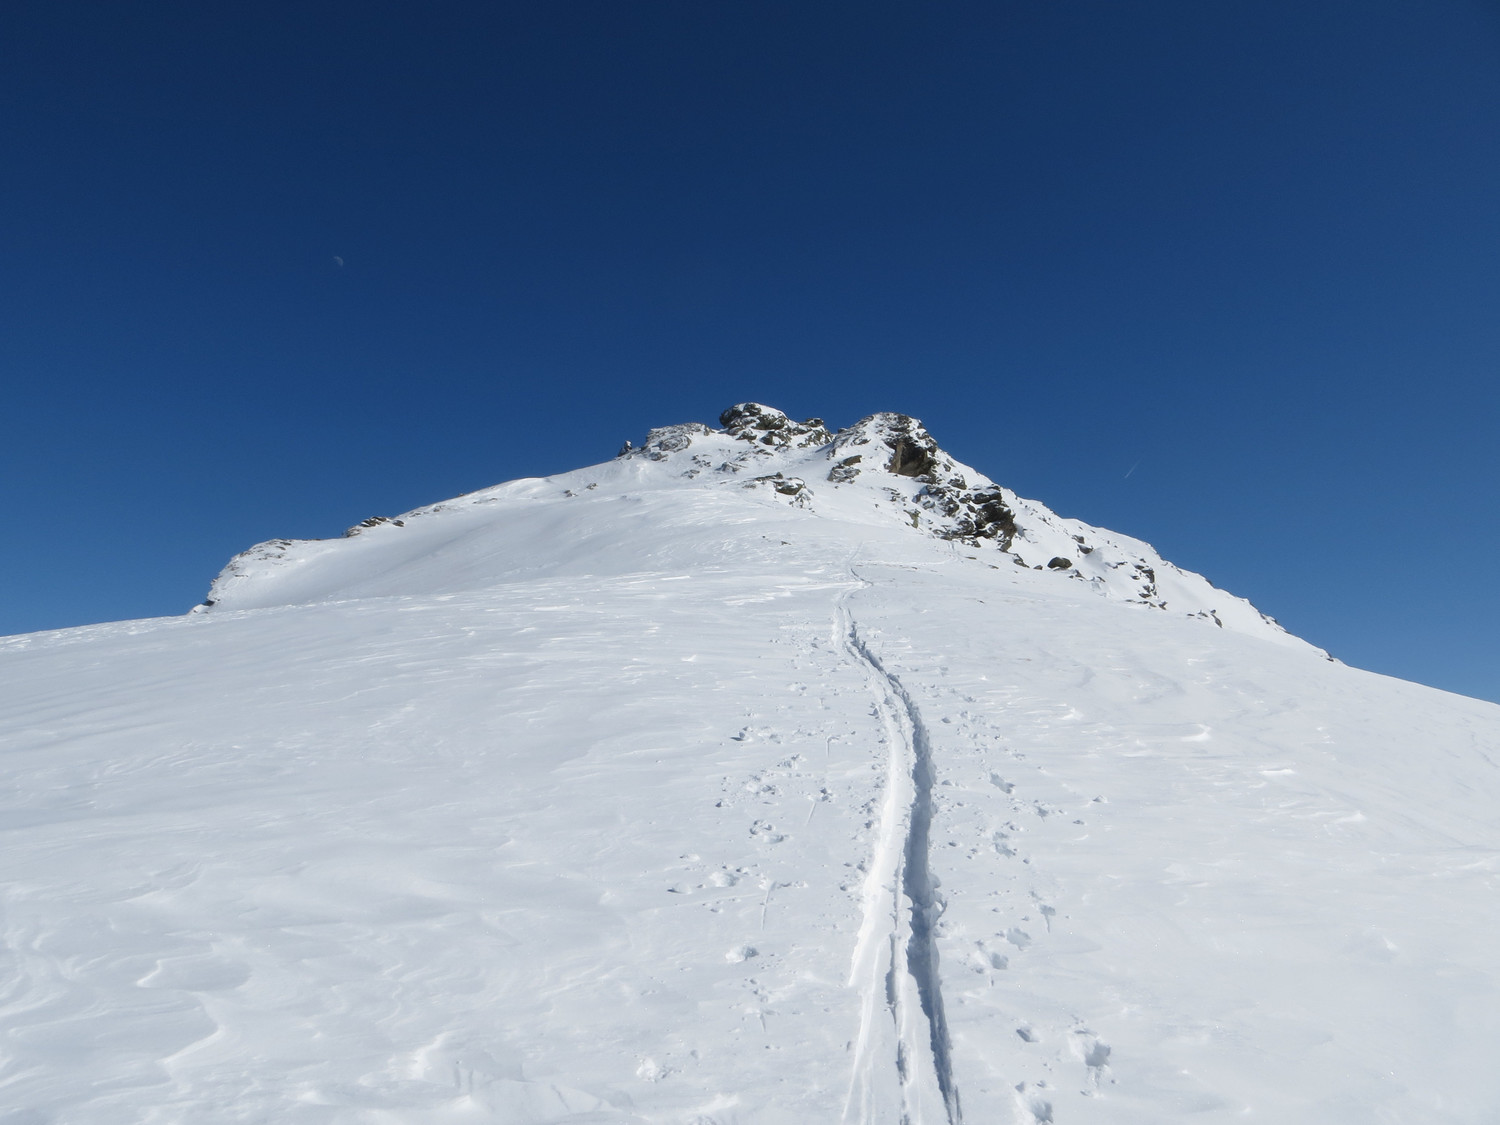 On the NW ridge to Hirzer